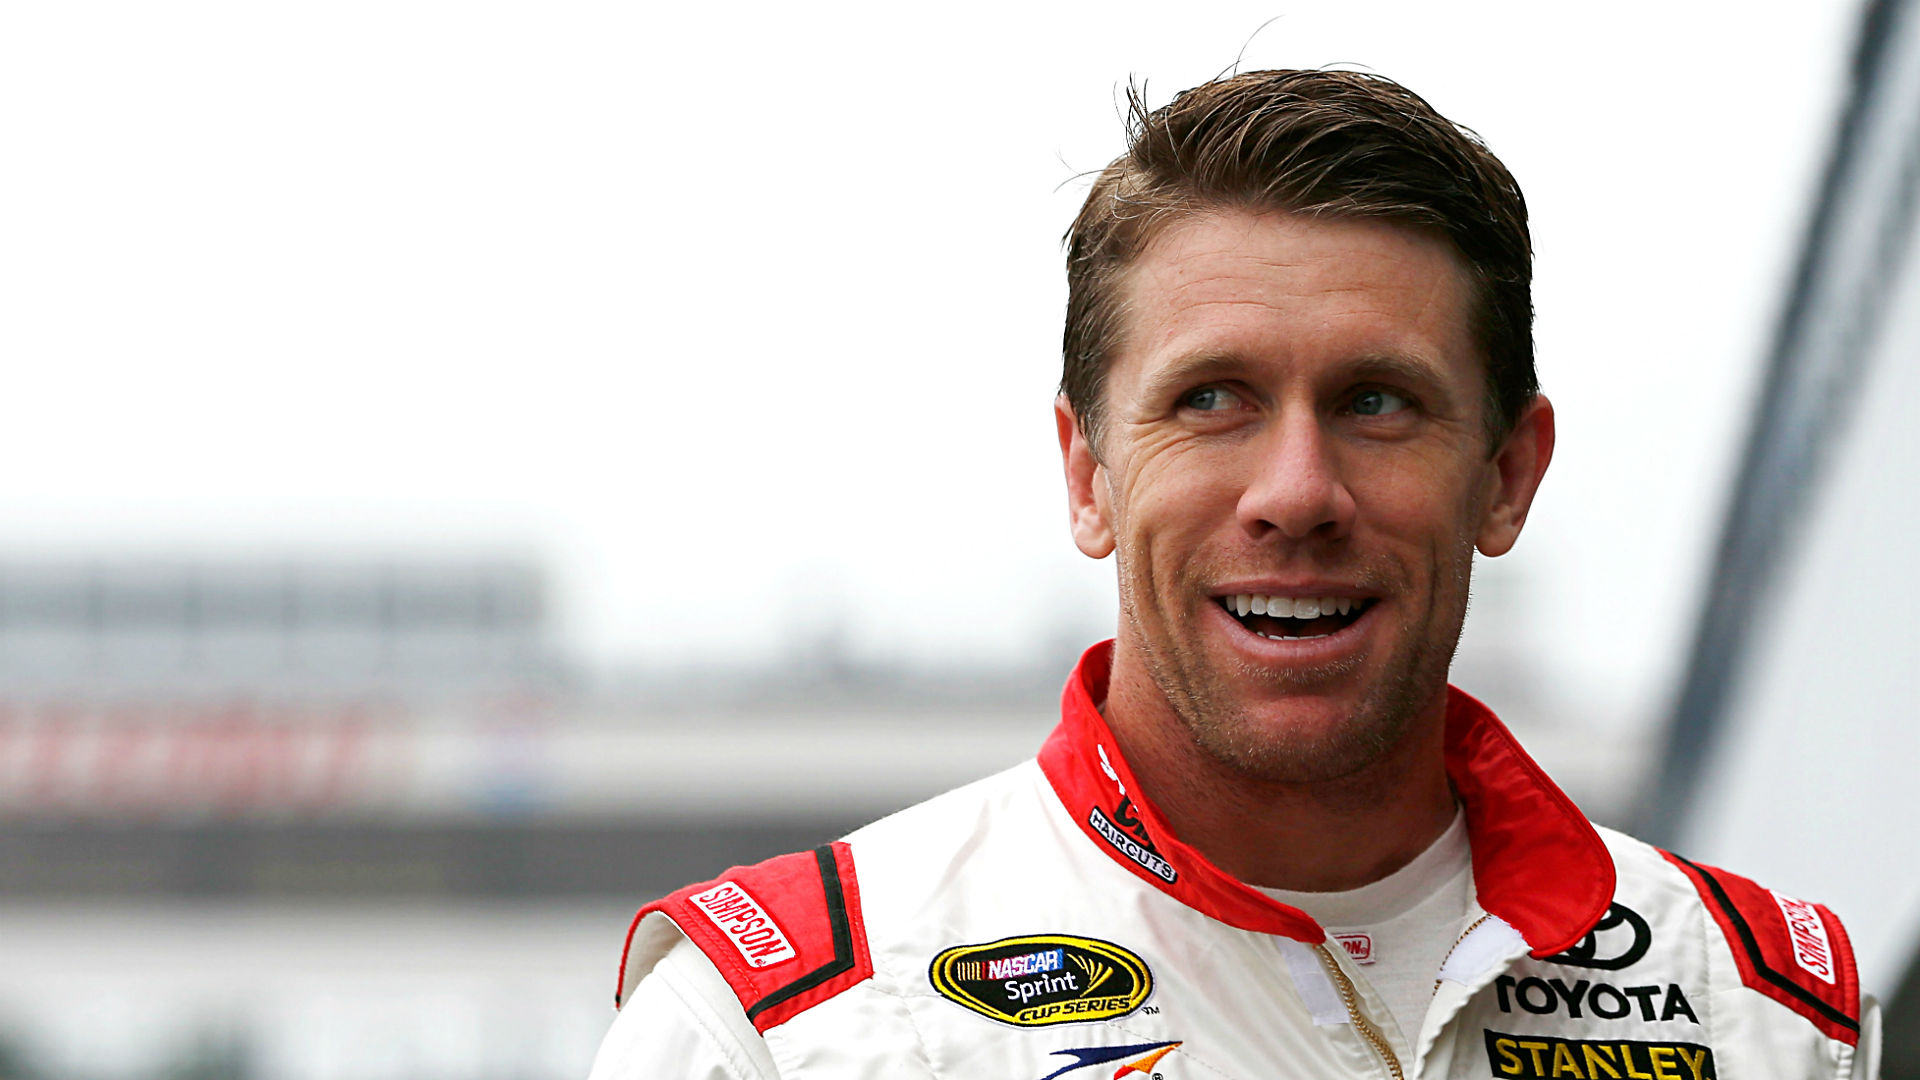 NASCAR odds and driver ratings — Edwards the driver to beat at New Hampshire